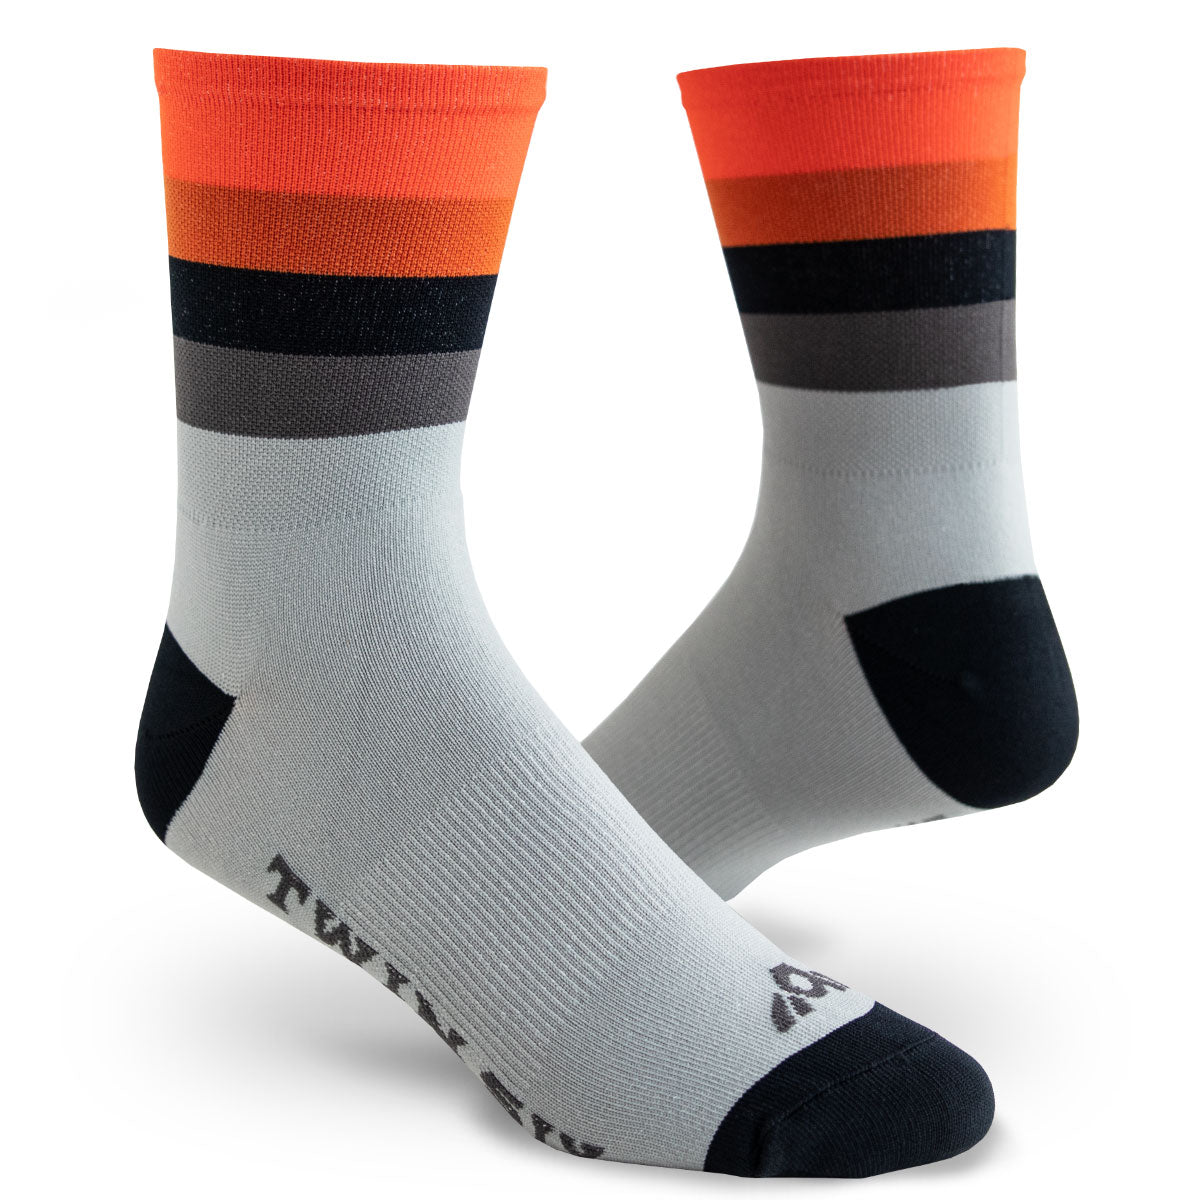 Soloist (GRAY) Socks